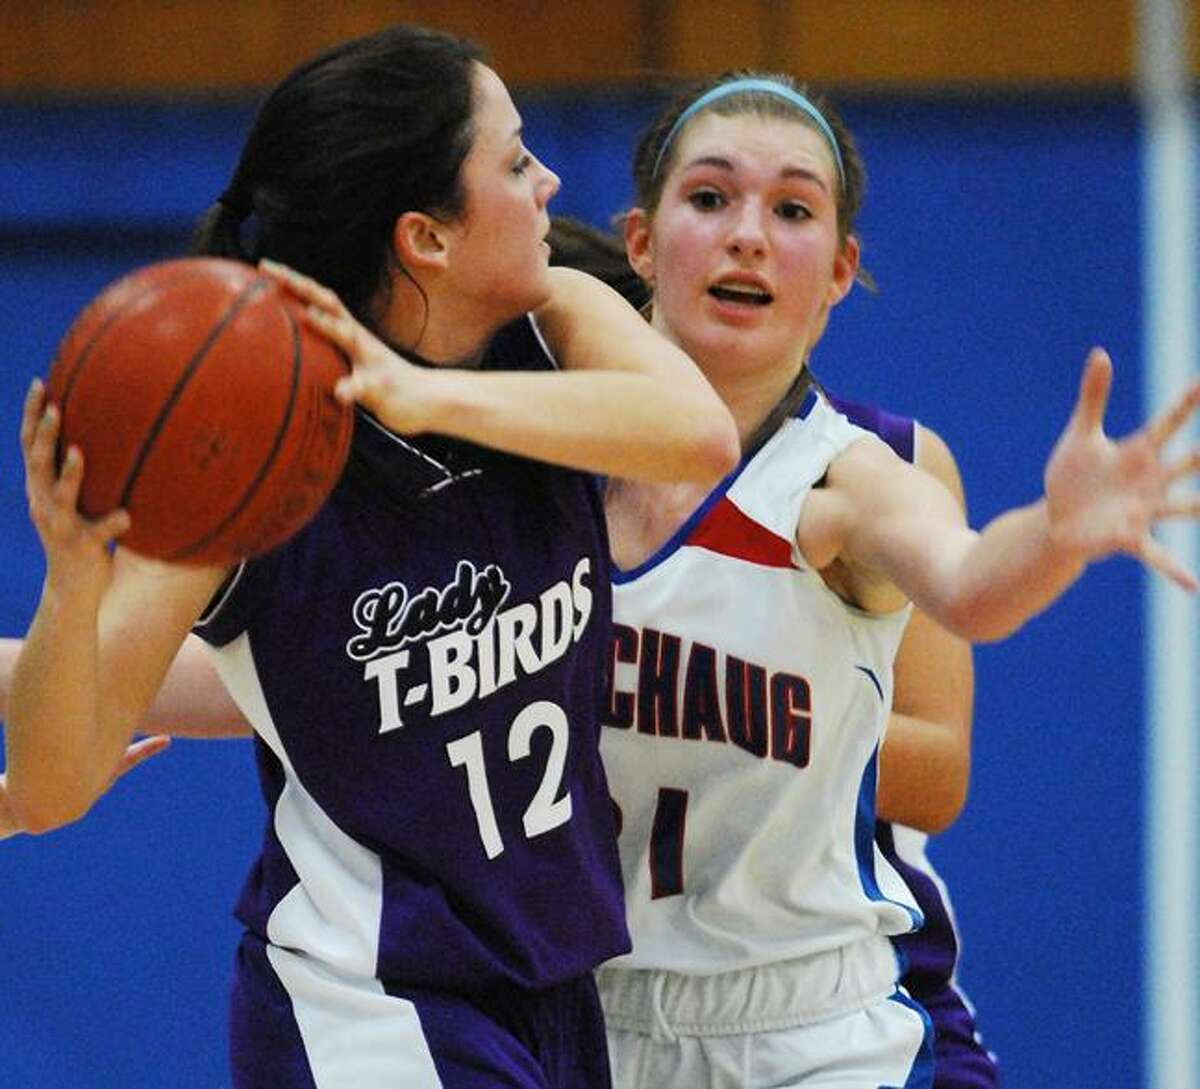 Catherine Avalone/The Middletown Press Coginchaug junior forward Caryn Sibiskie defends against North Branford's Ashley Arre in the first half of the Devils' 46-34 win Friday night in Durham.